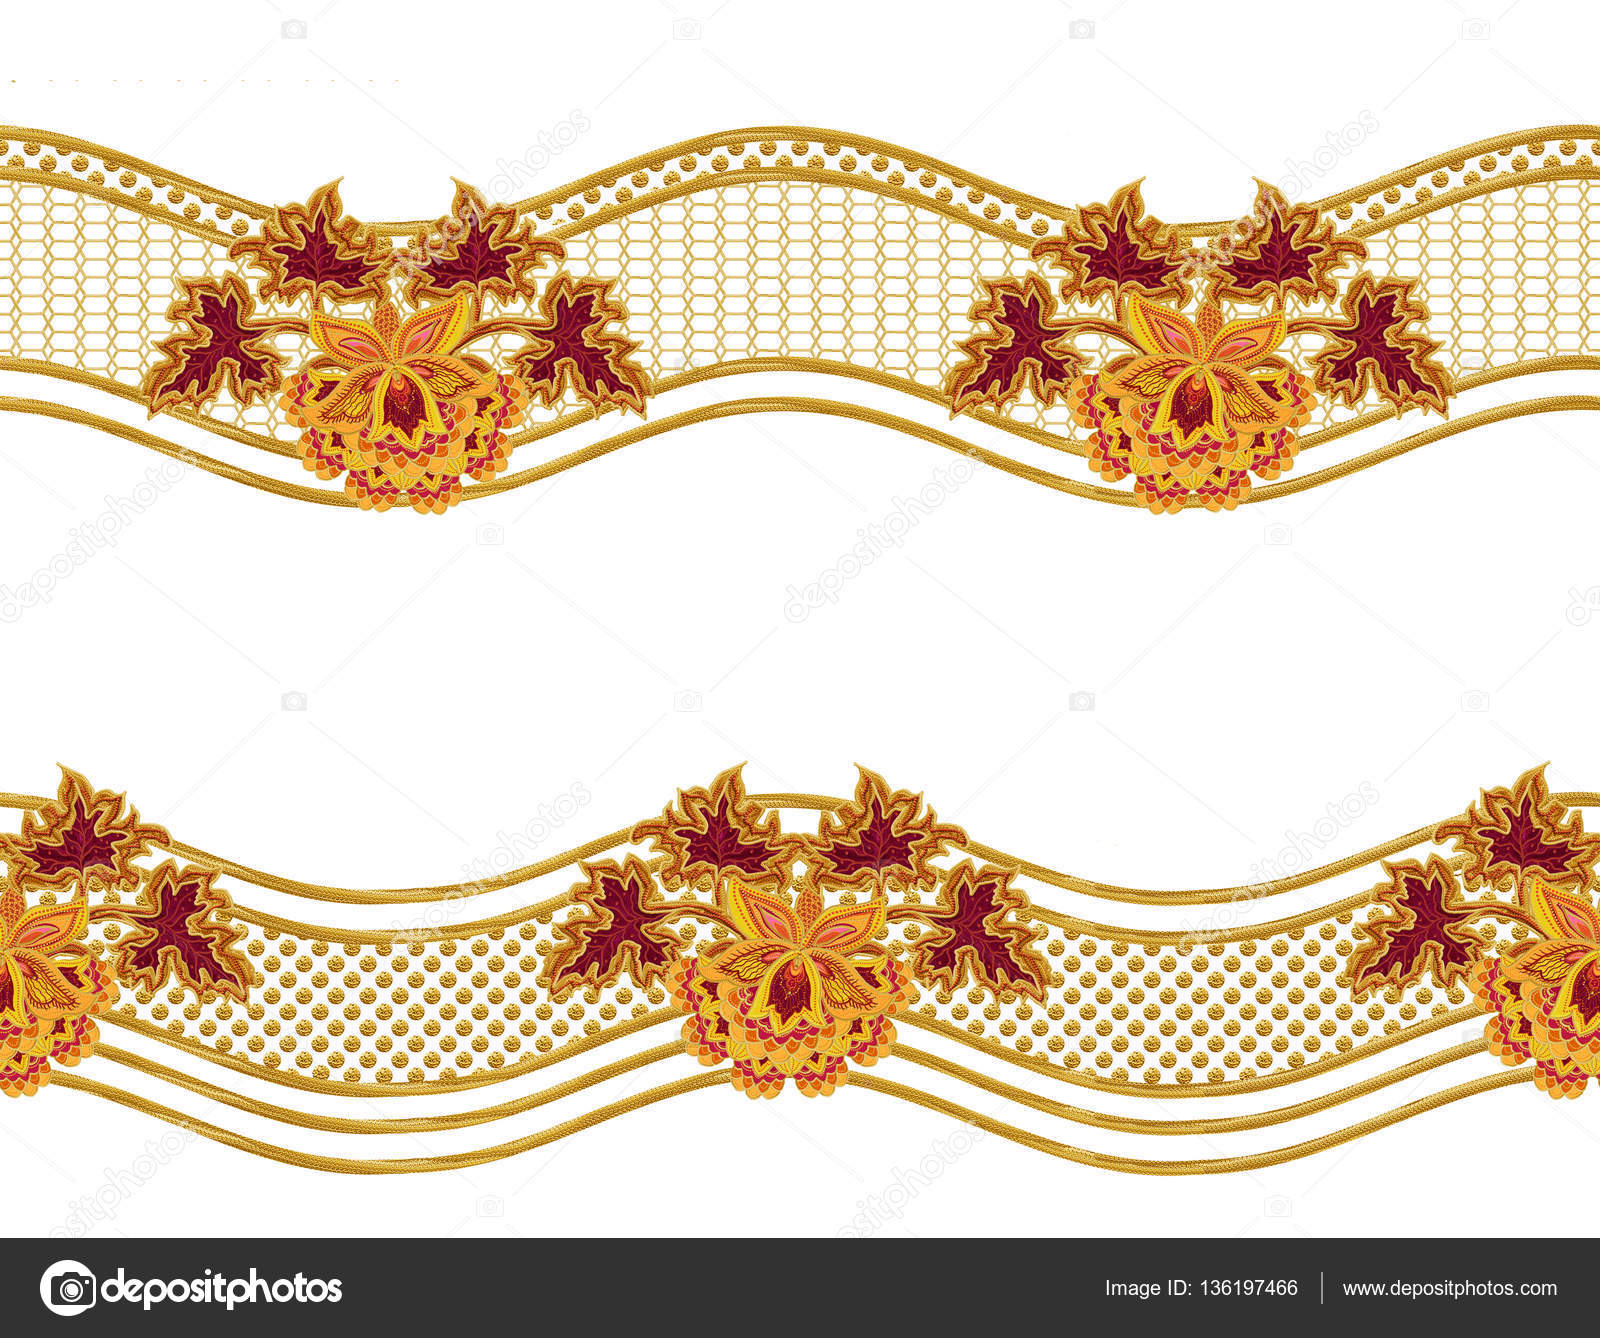 Seamless pattern. Golden textured curls. Oriental style arabesques.